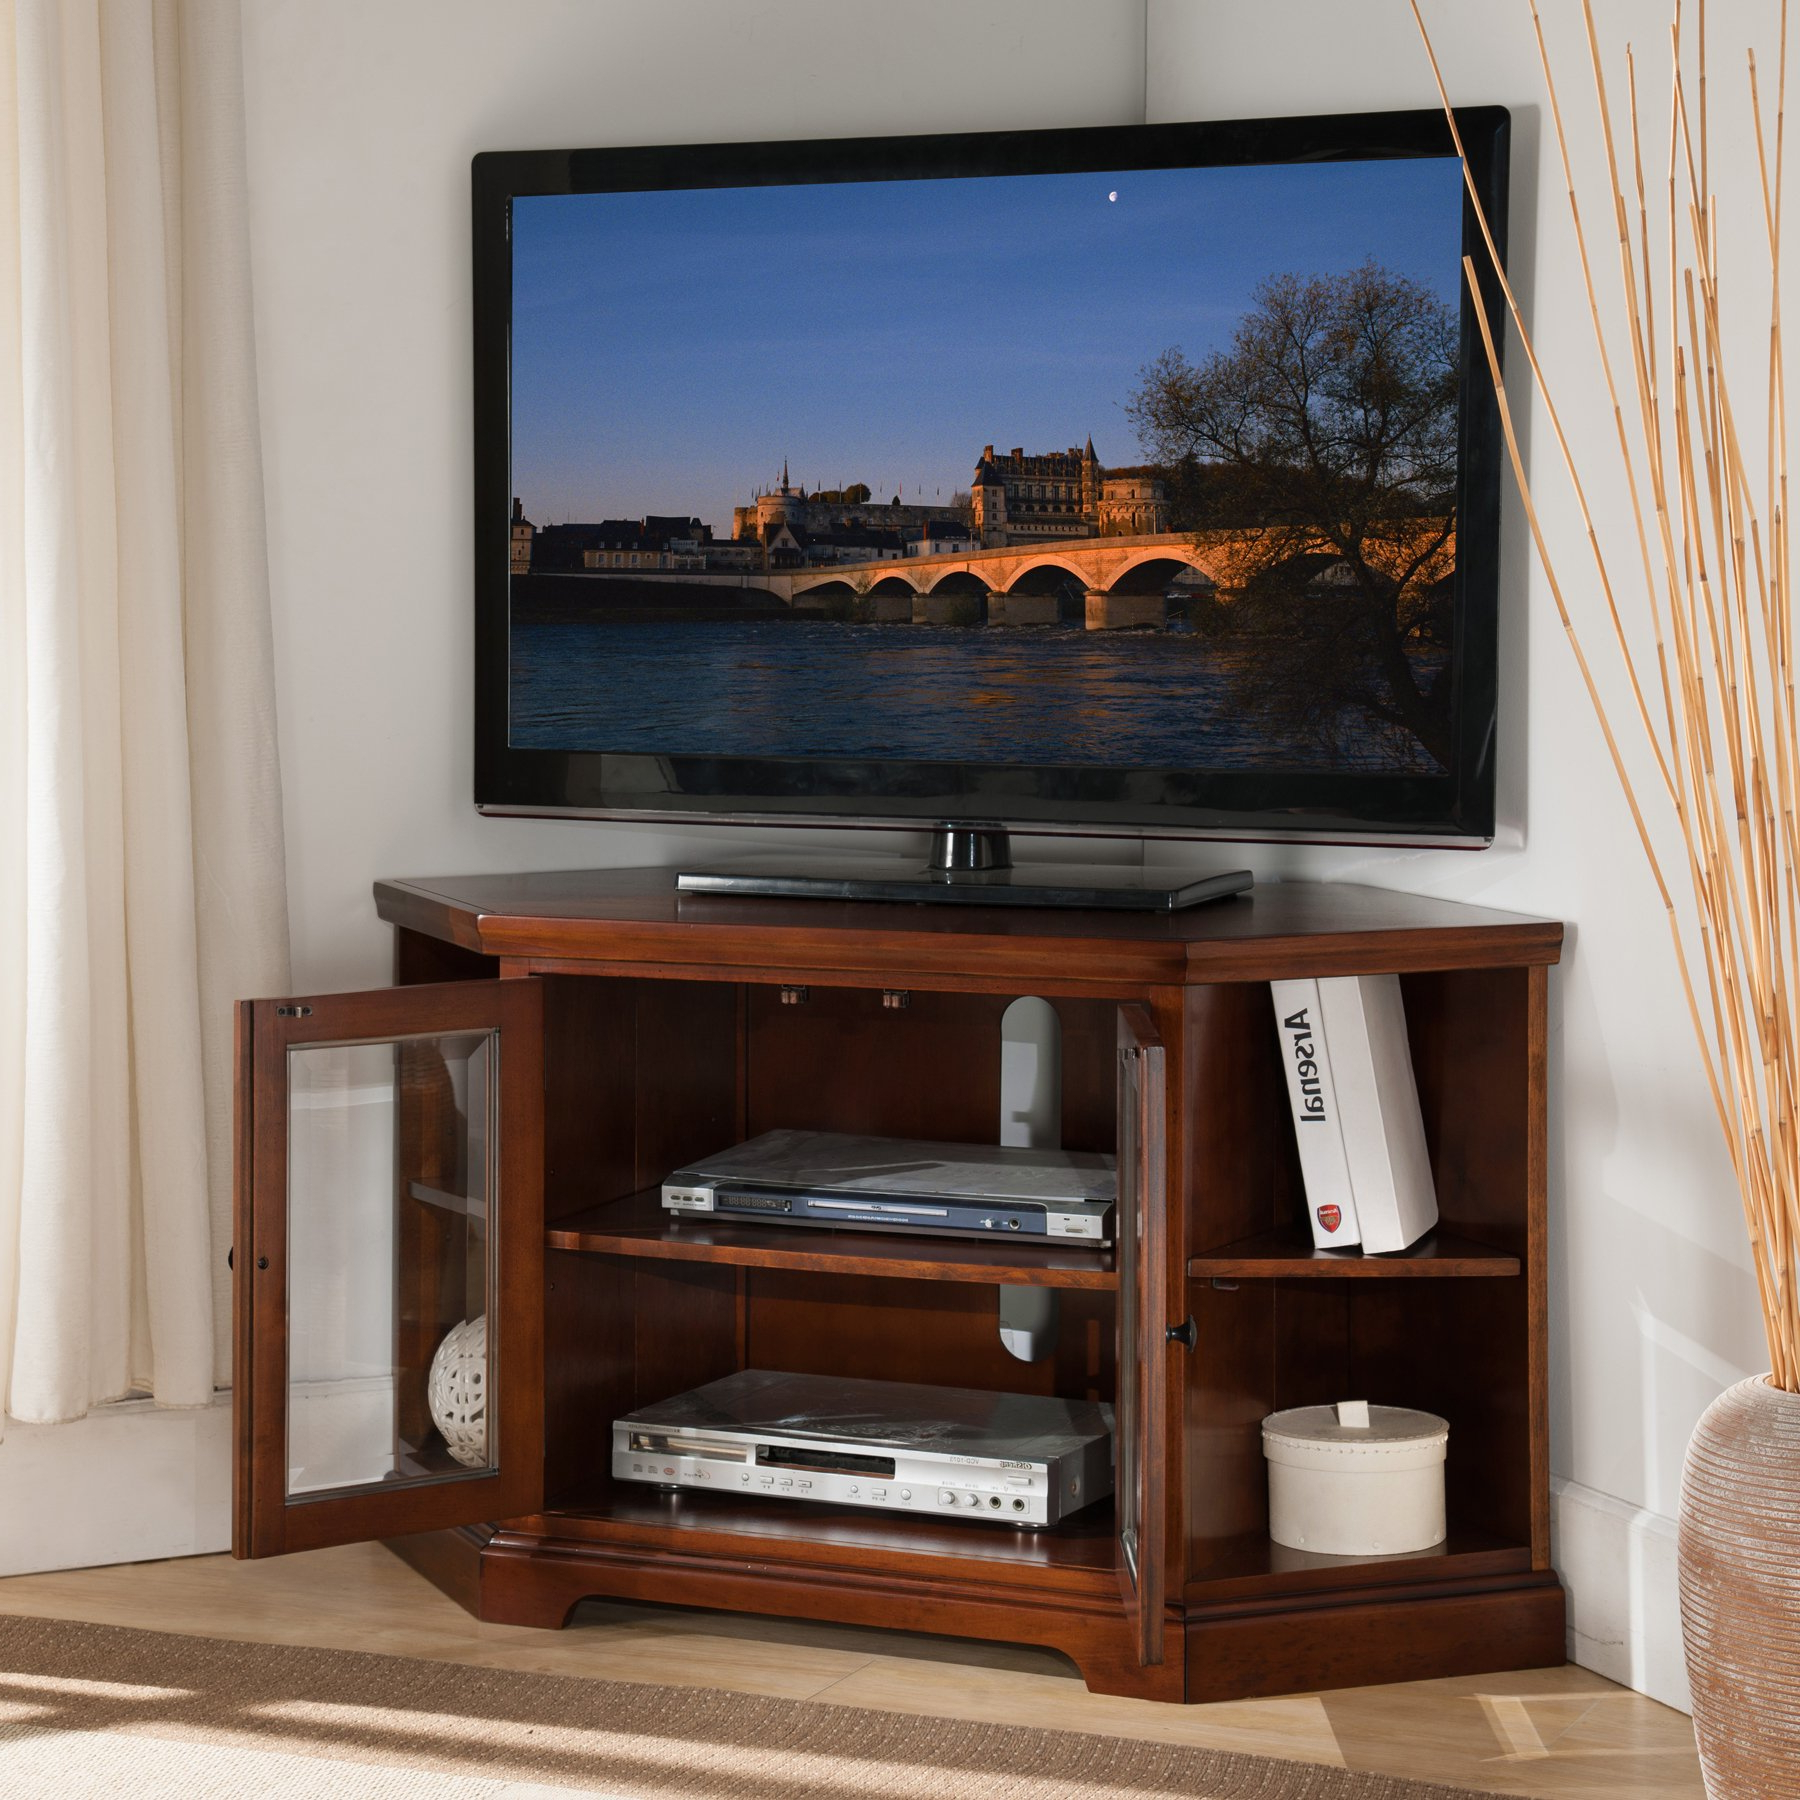 Tv Stands With Bookcases Throughout Most Popular Shop Westwood Cherry 46 Inch Corner Tv Stand With Bookcases – Free (View 13 of 20)